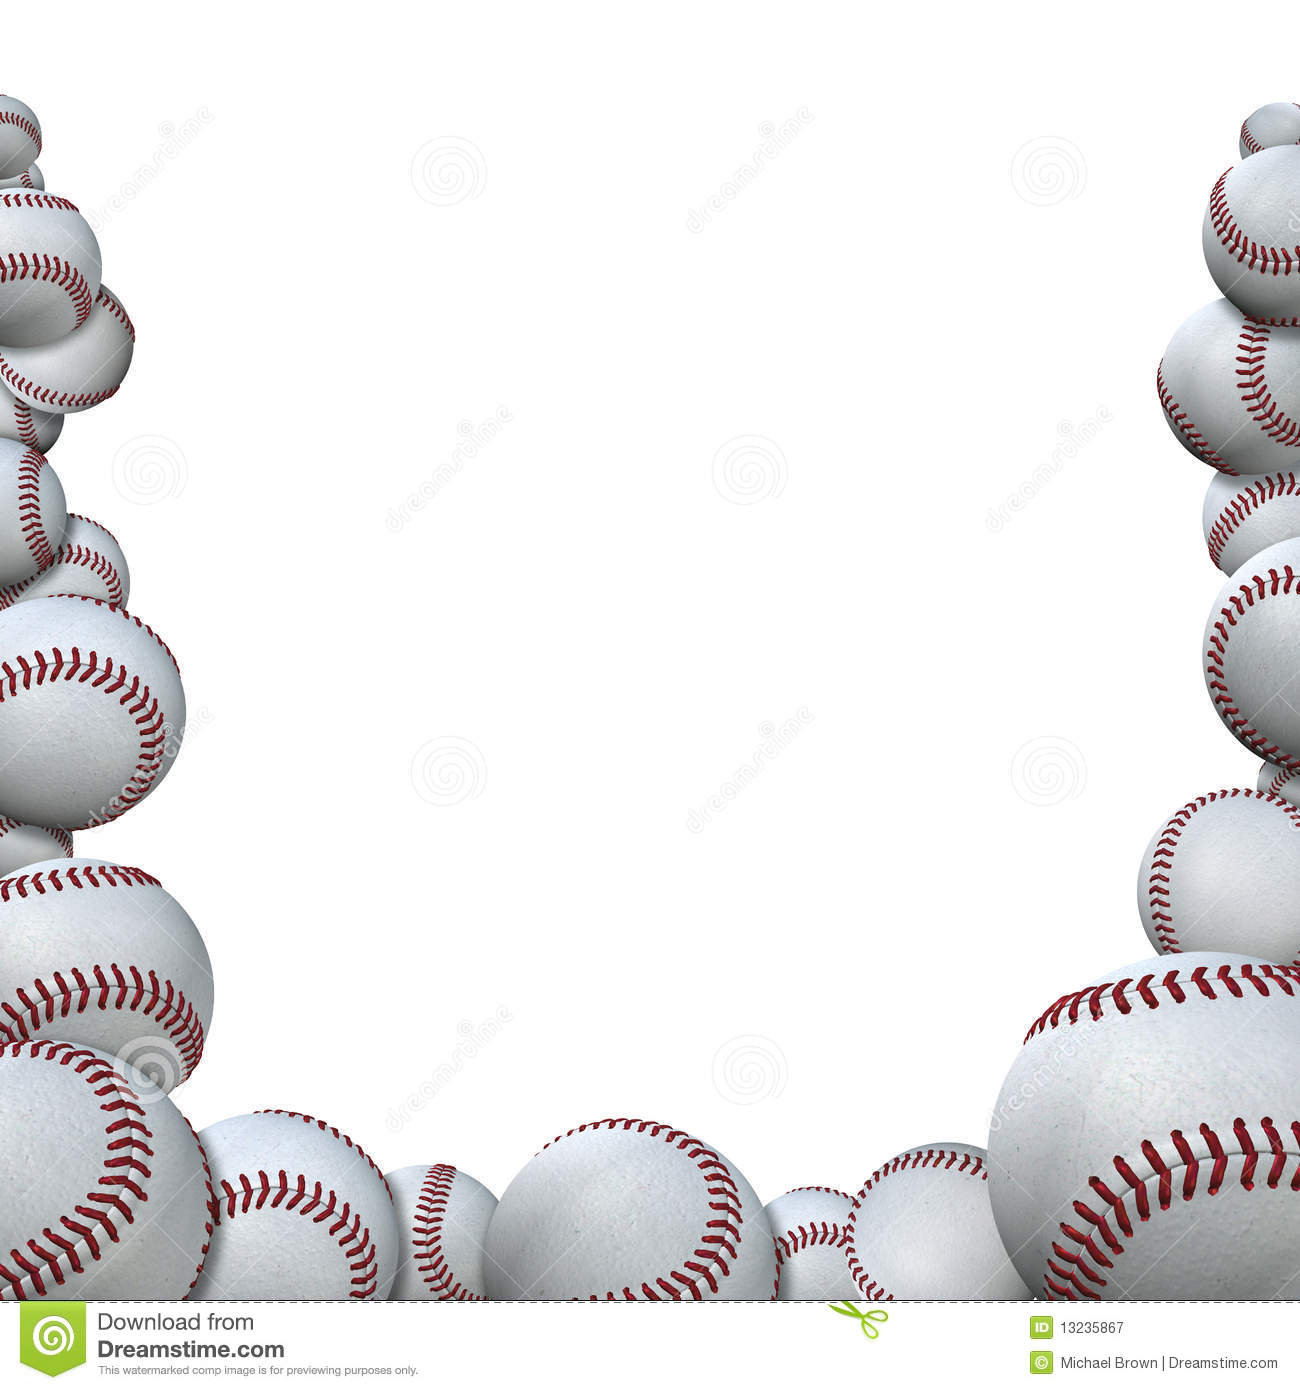 Baseball page border clipart picture royalty free 51+ Baseball Border Clipart | ClipartLook picture royalty free